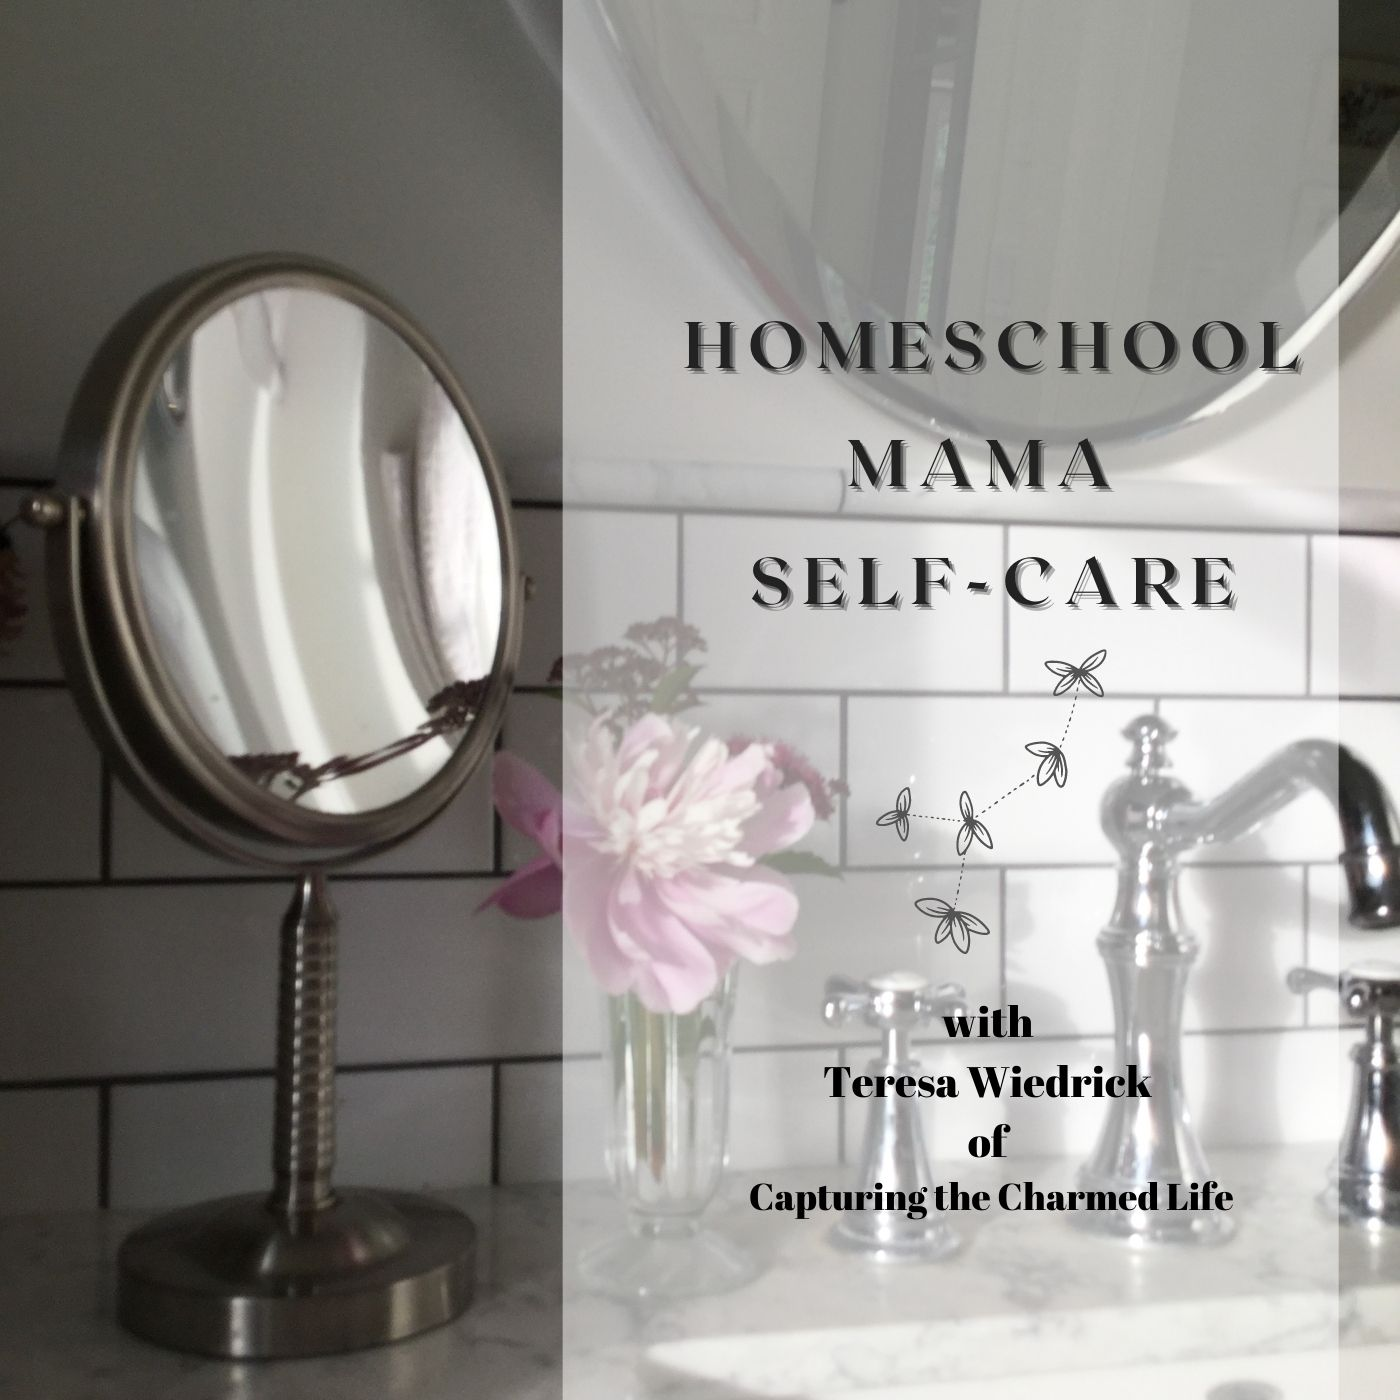 Homeschool Mama Self-Care: Turning Challenges into Charms